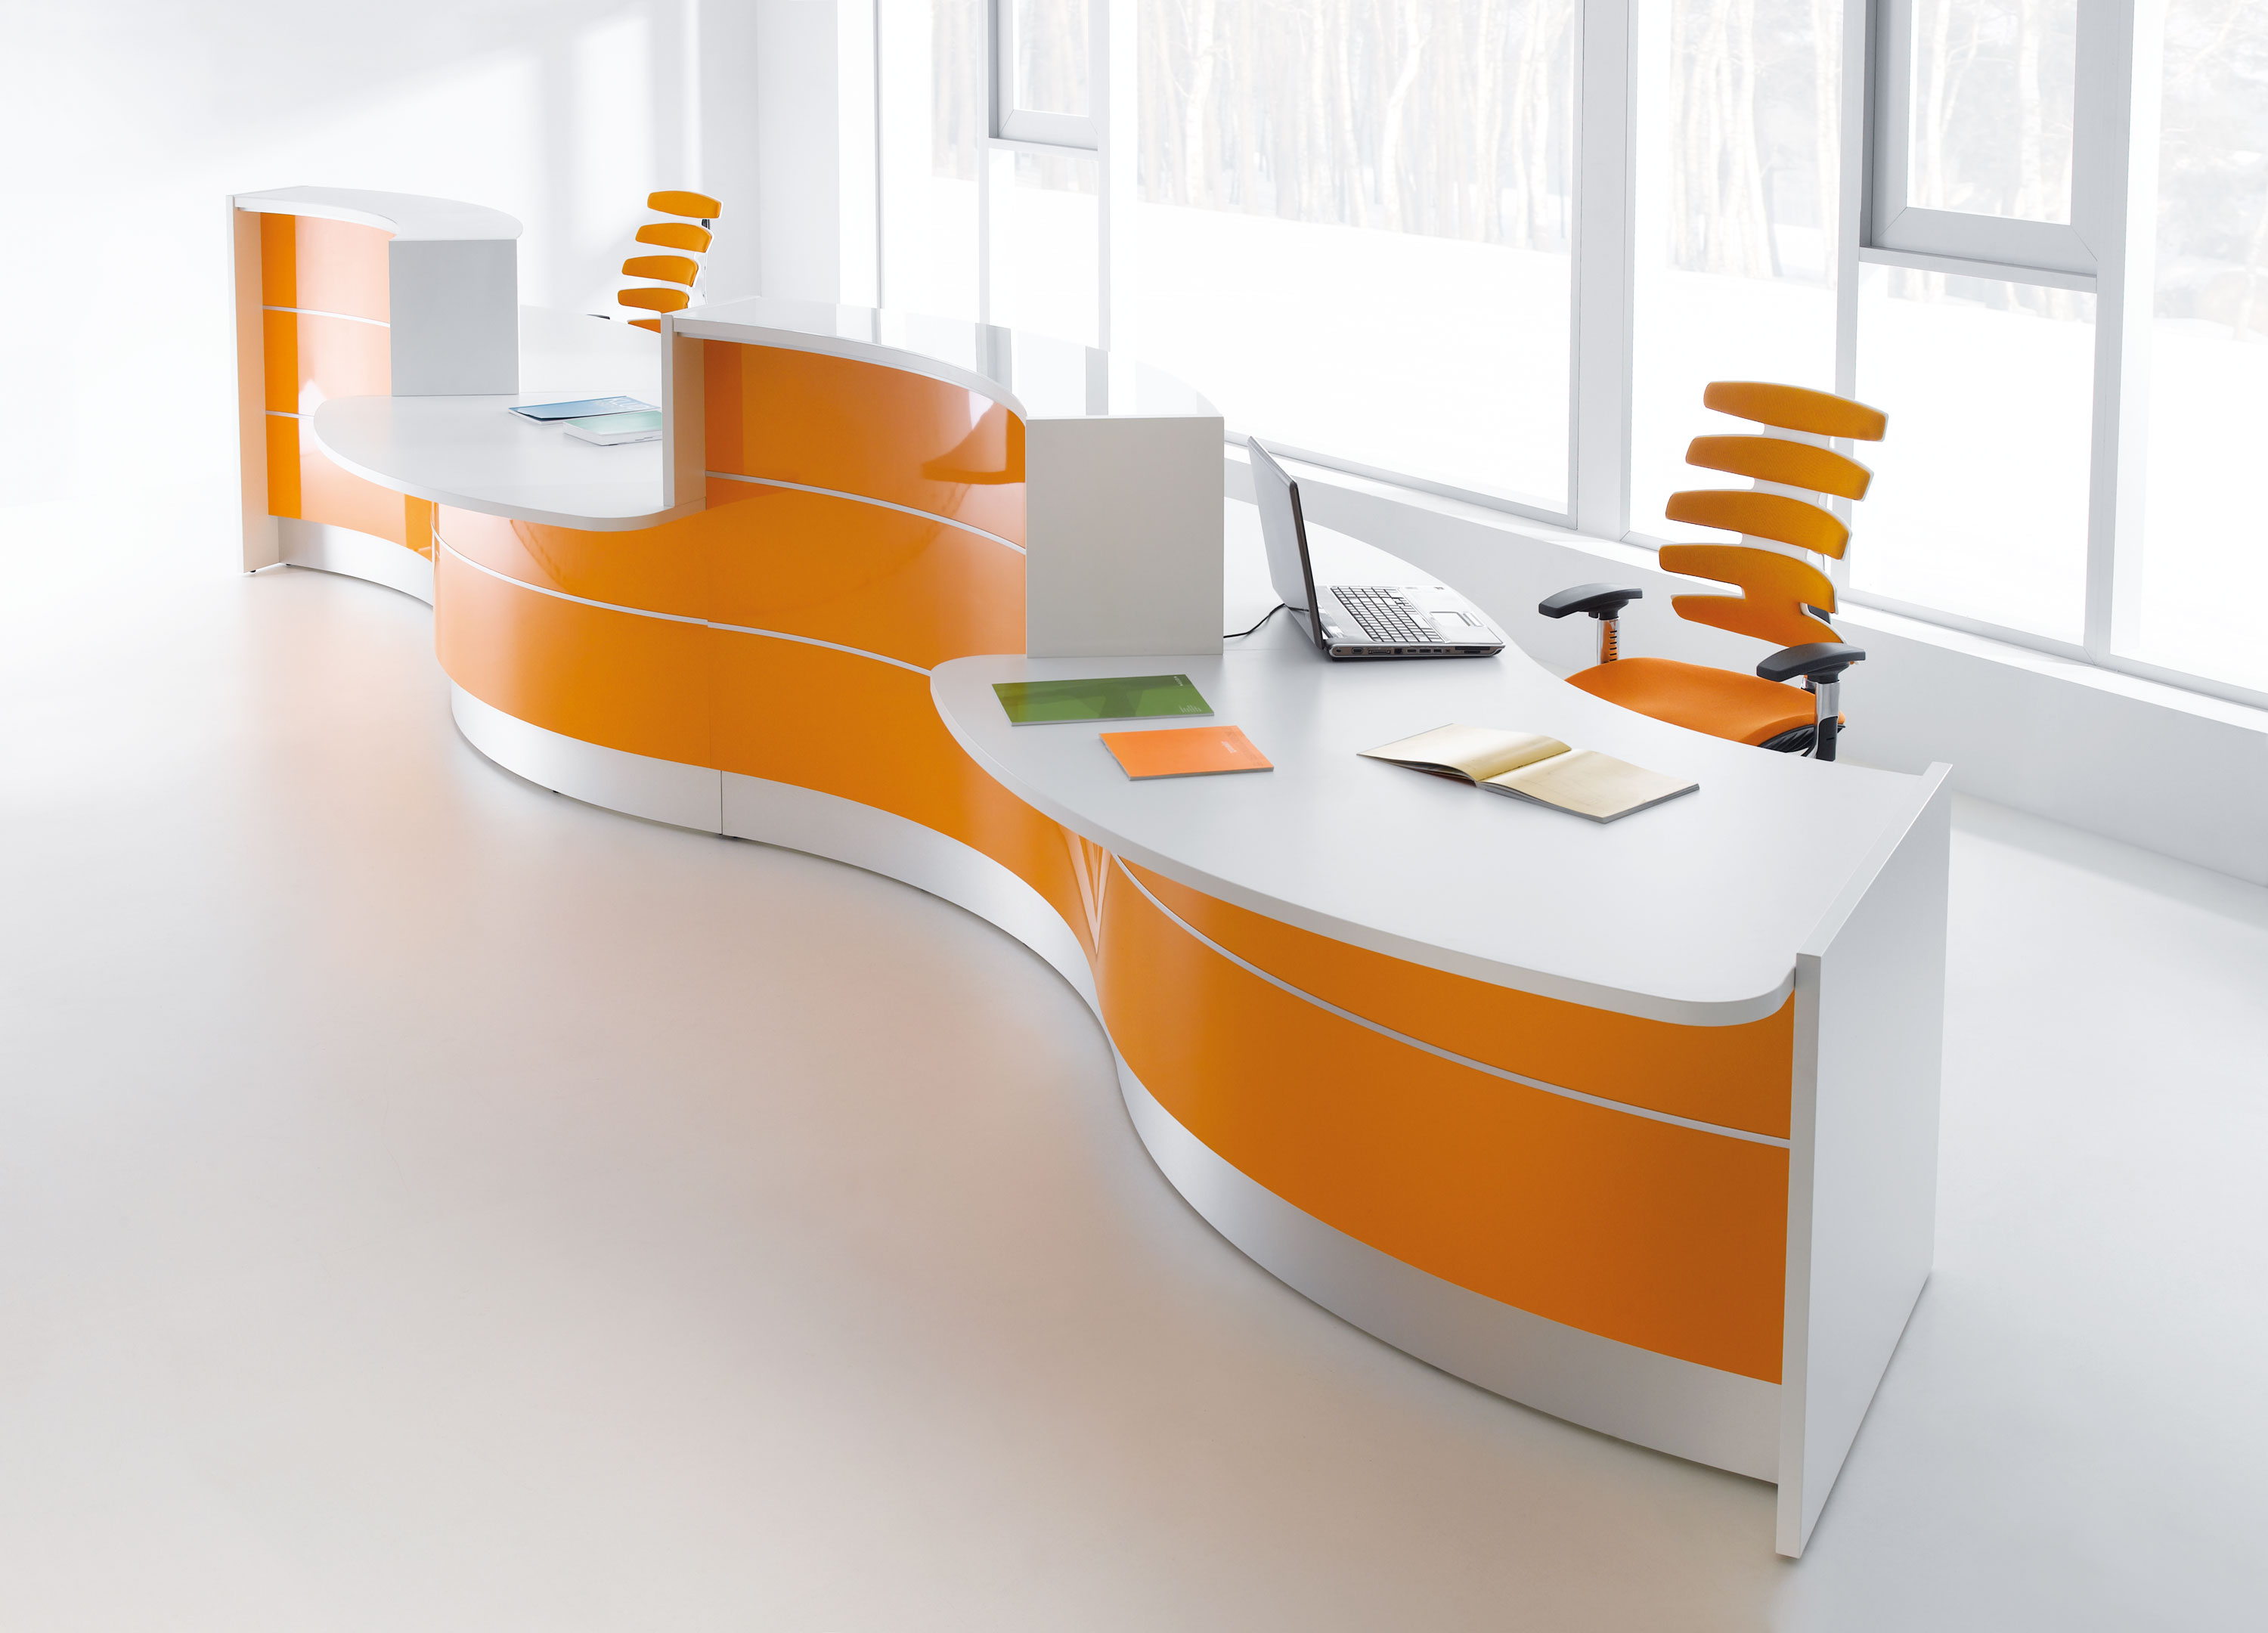 https://blog.strongproject.com/wp-content/uploads/2014/01/24-reception-desks-05.jpg